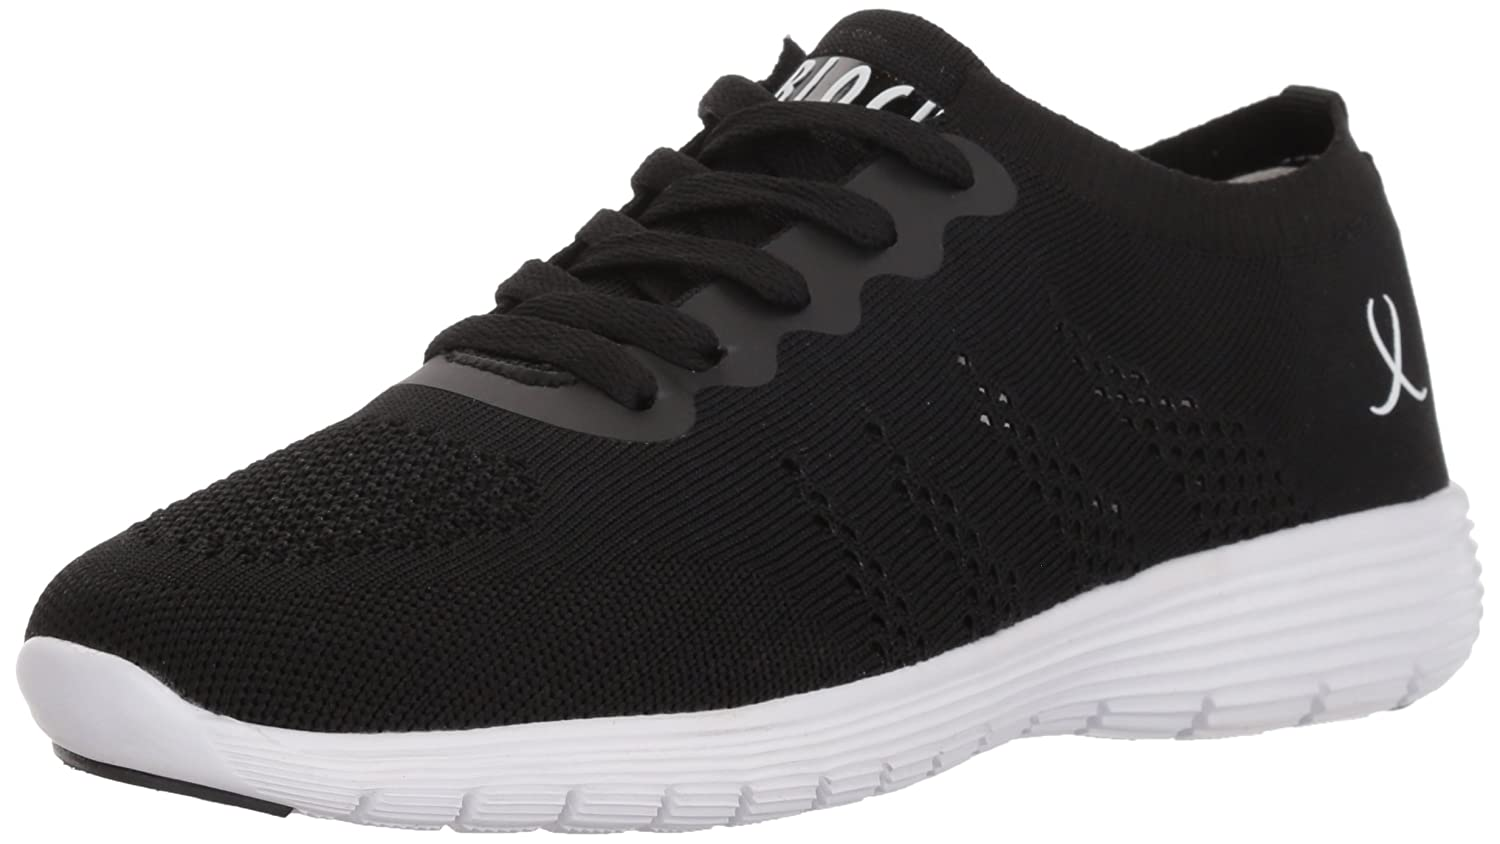 Bloch Women's Omnia Shoe B079ZCC4PP 6 M US|Black